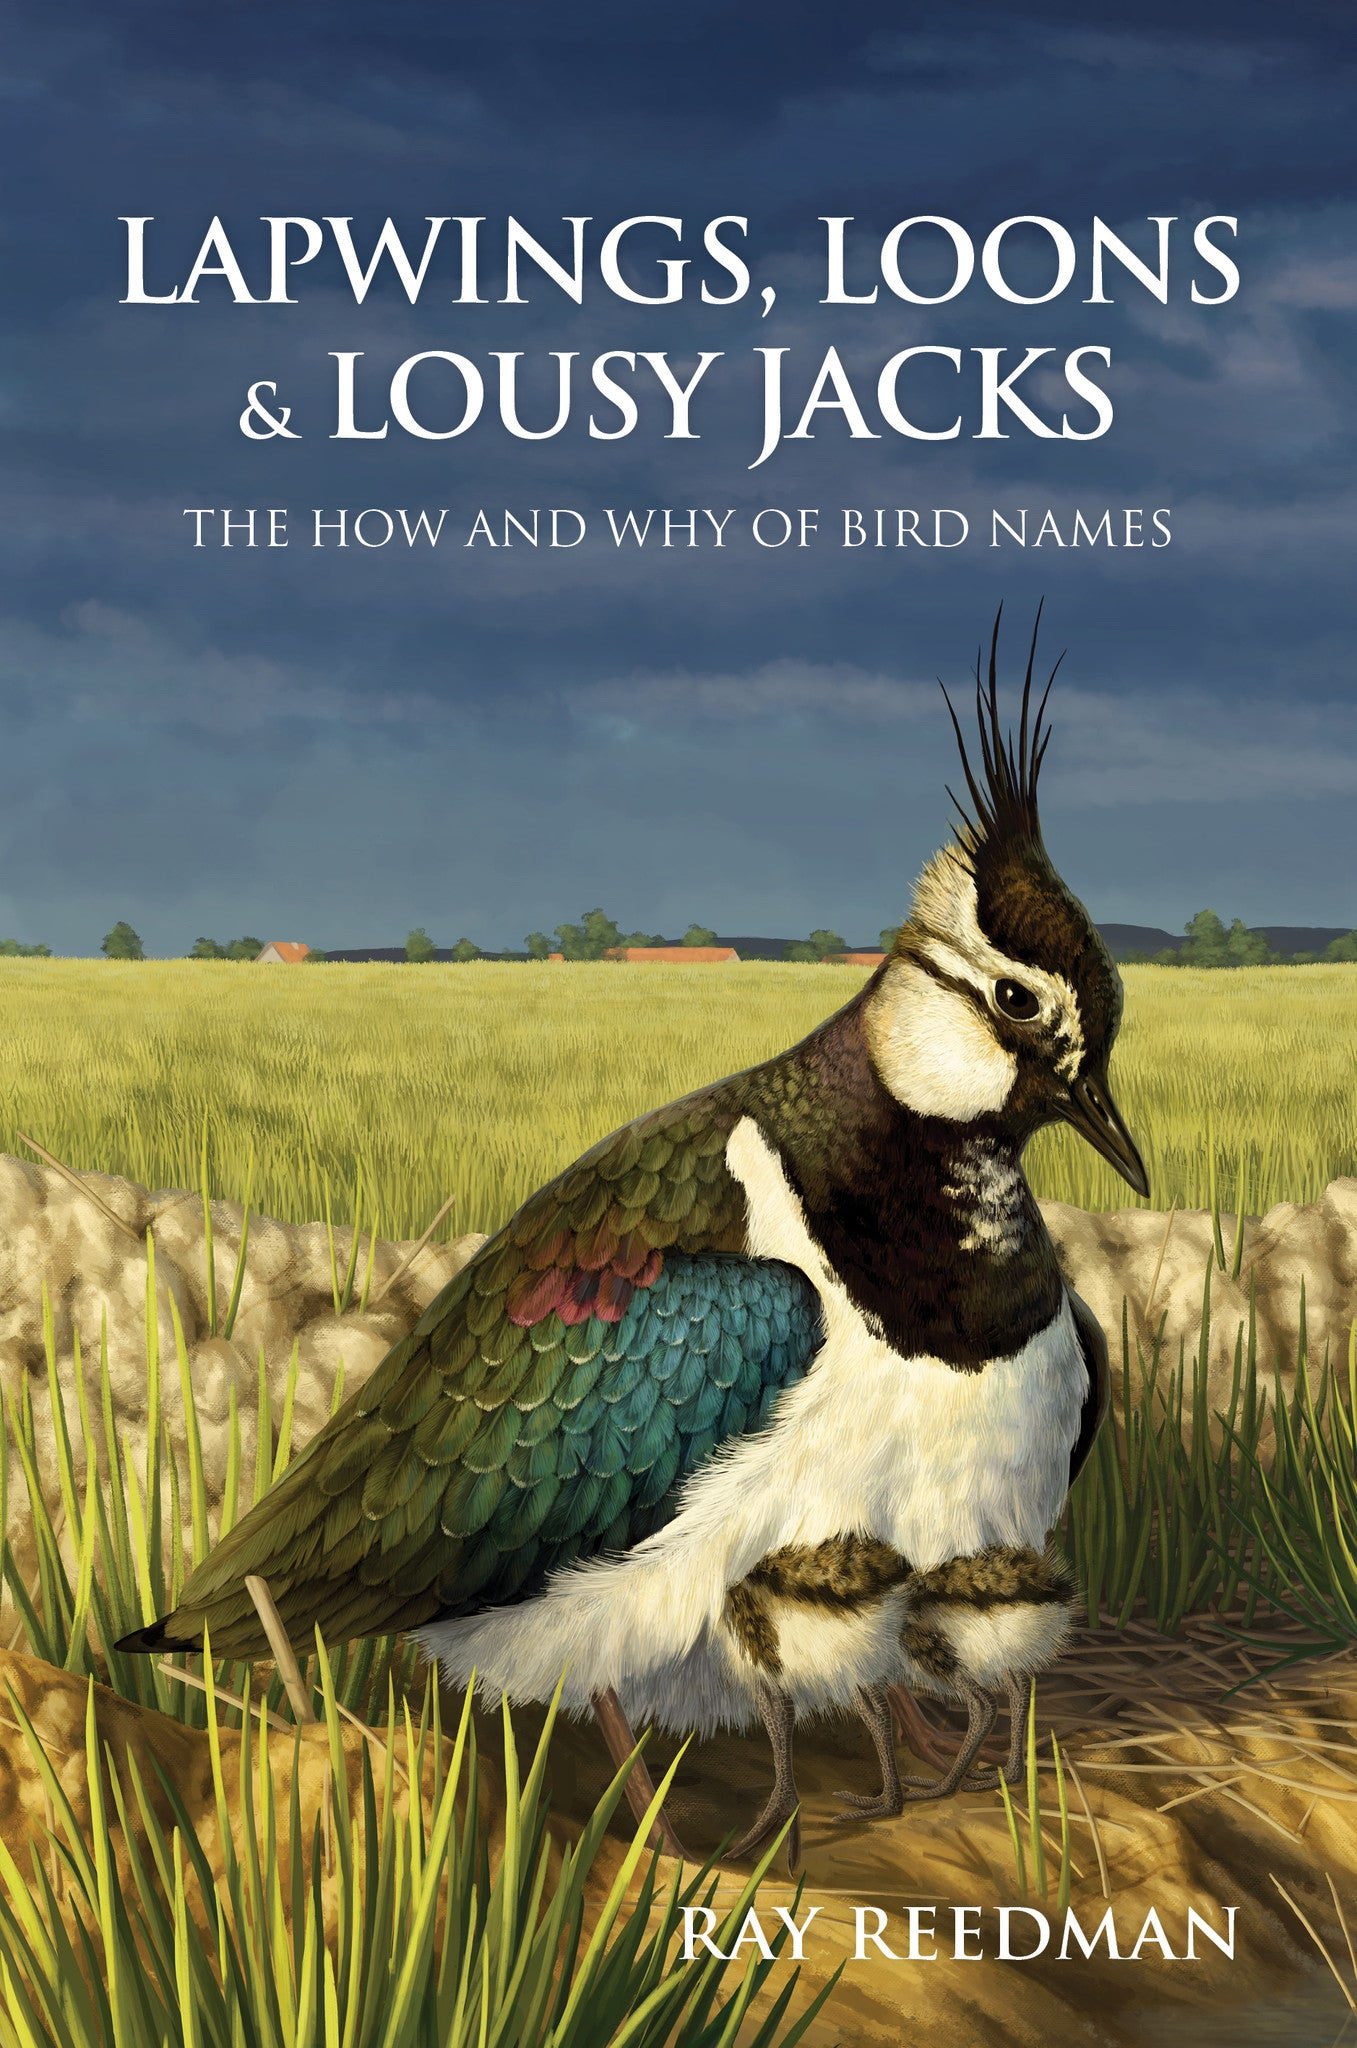 Lapwings, Loons and Lousy Jacks - Pelagic Publishing